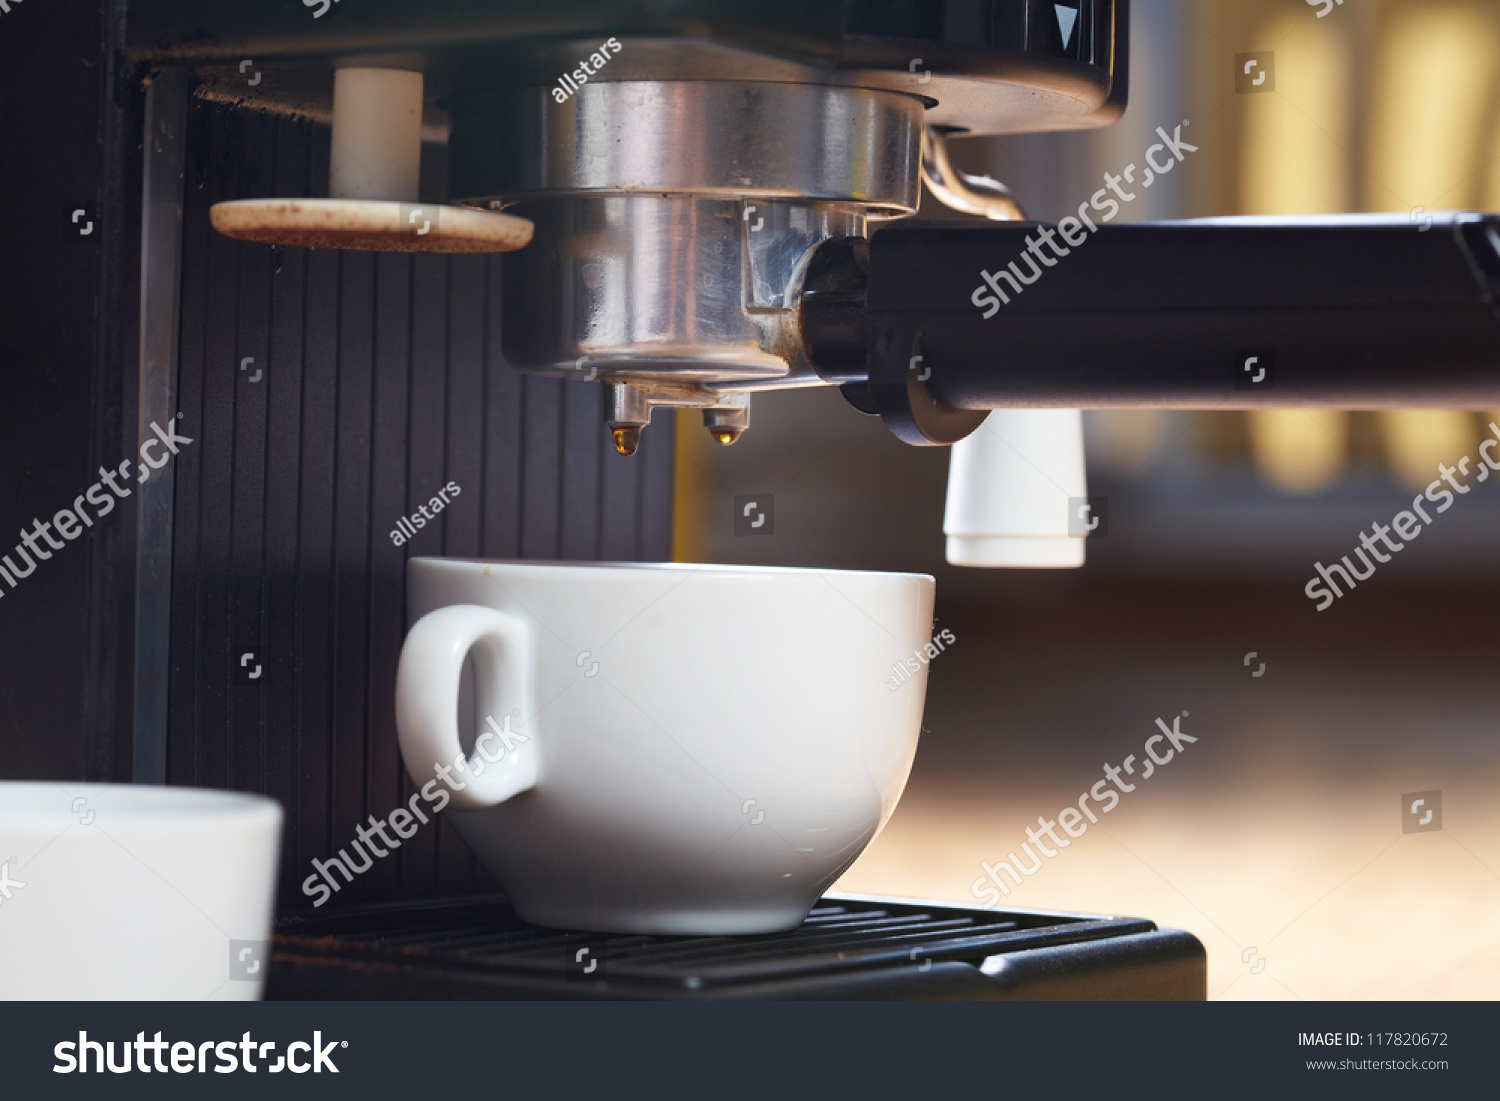 Coffee Maker Z Wave : Coffee Maker Machine Stock Photo 117820672 : Shutterstock